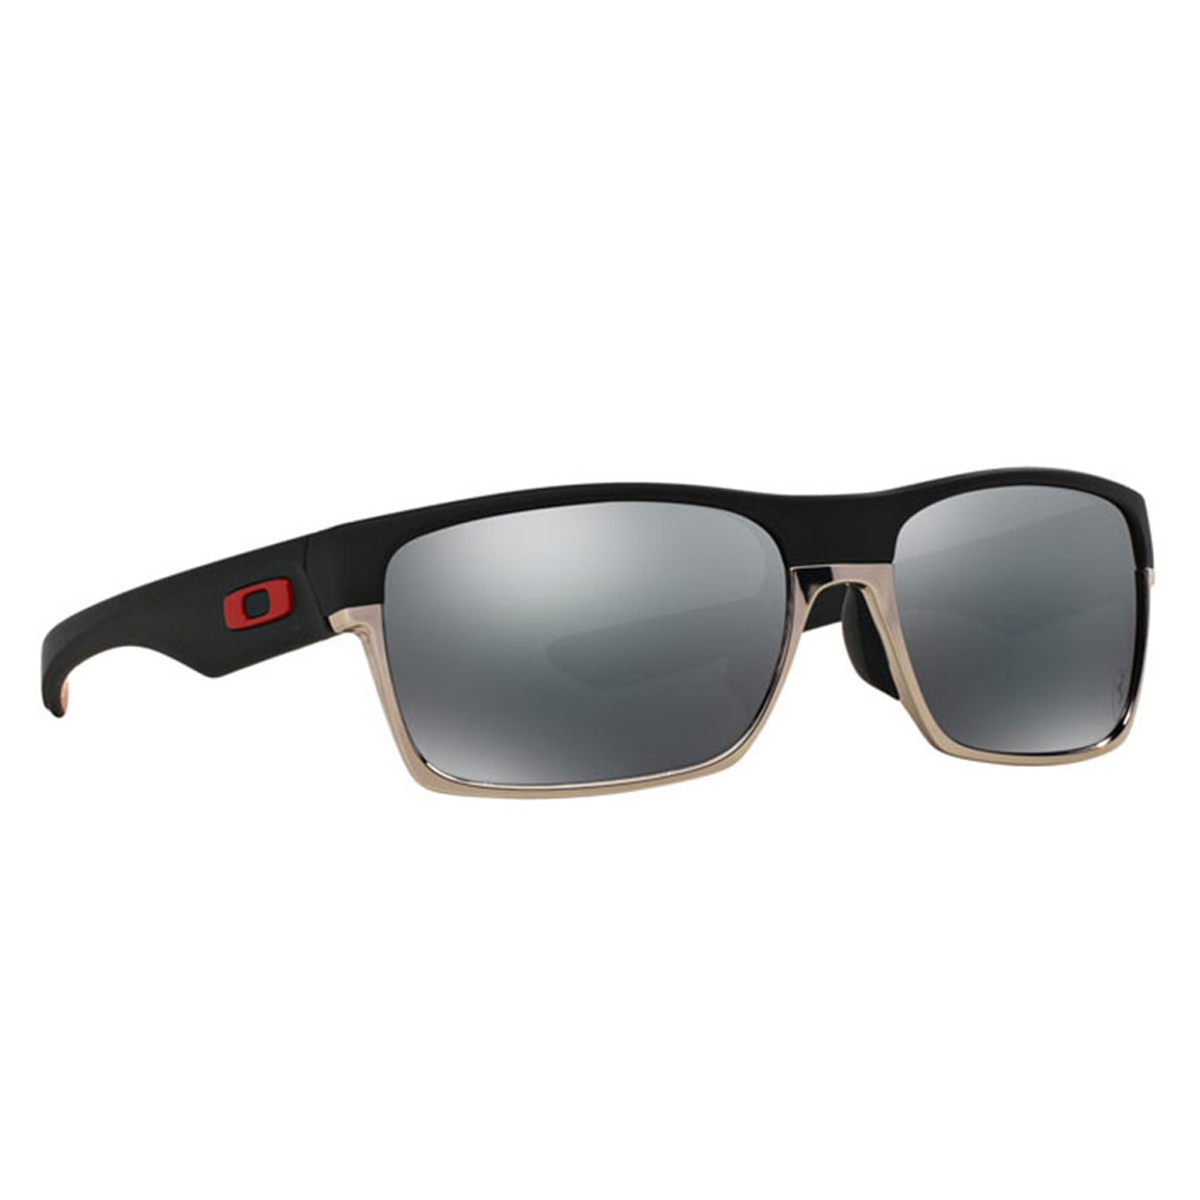 Oakley sunglasses asian fit - Oakley Sunglasses Asian Fit 42